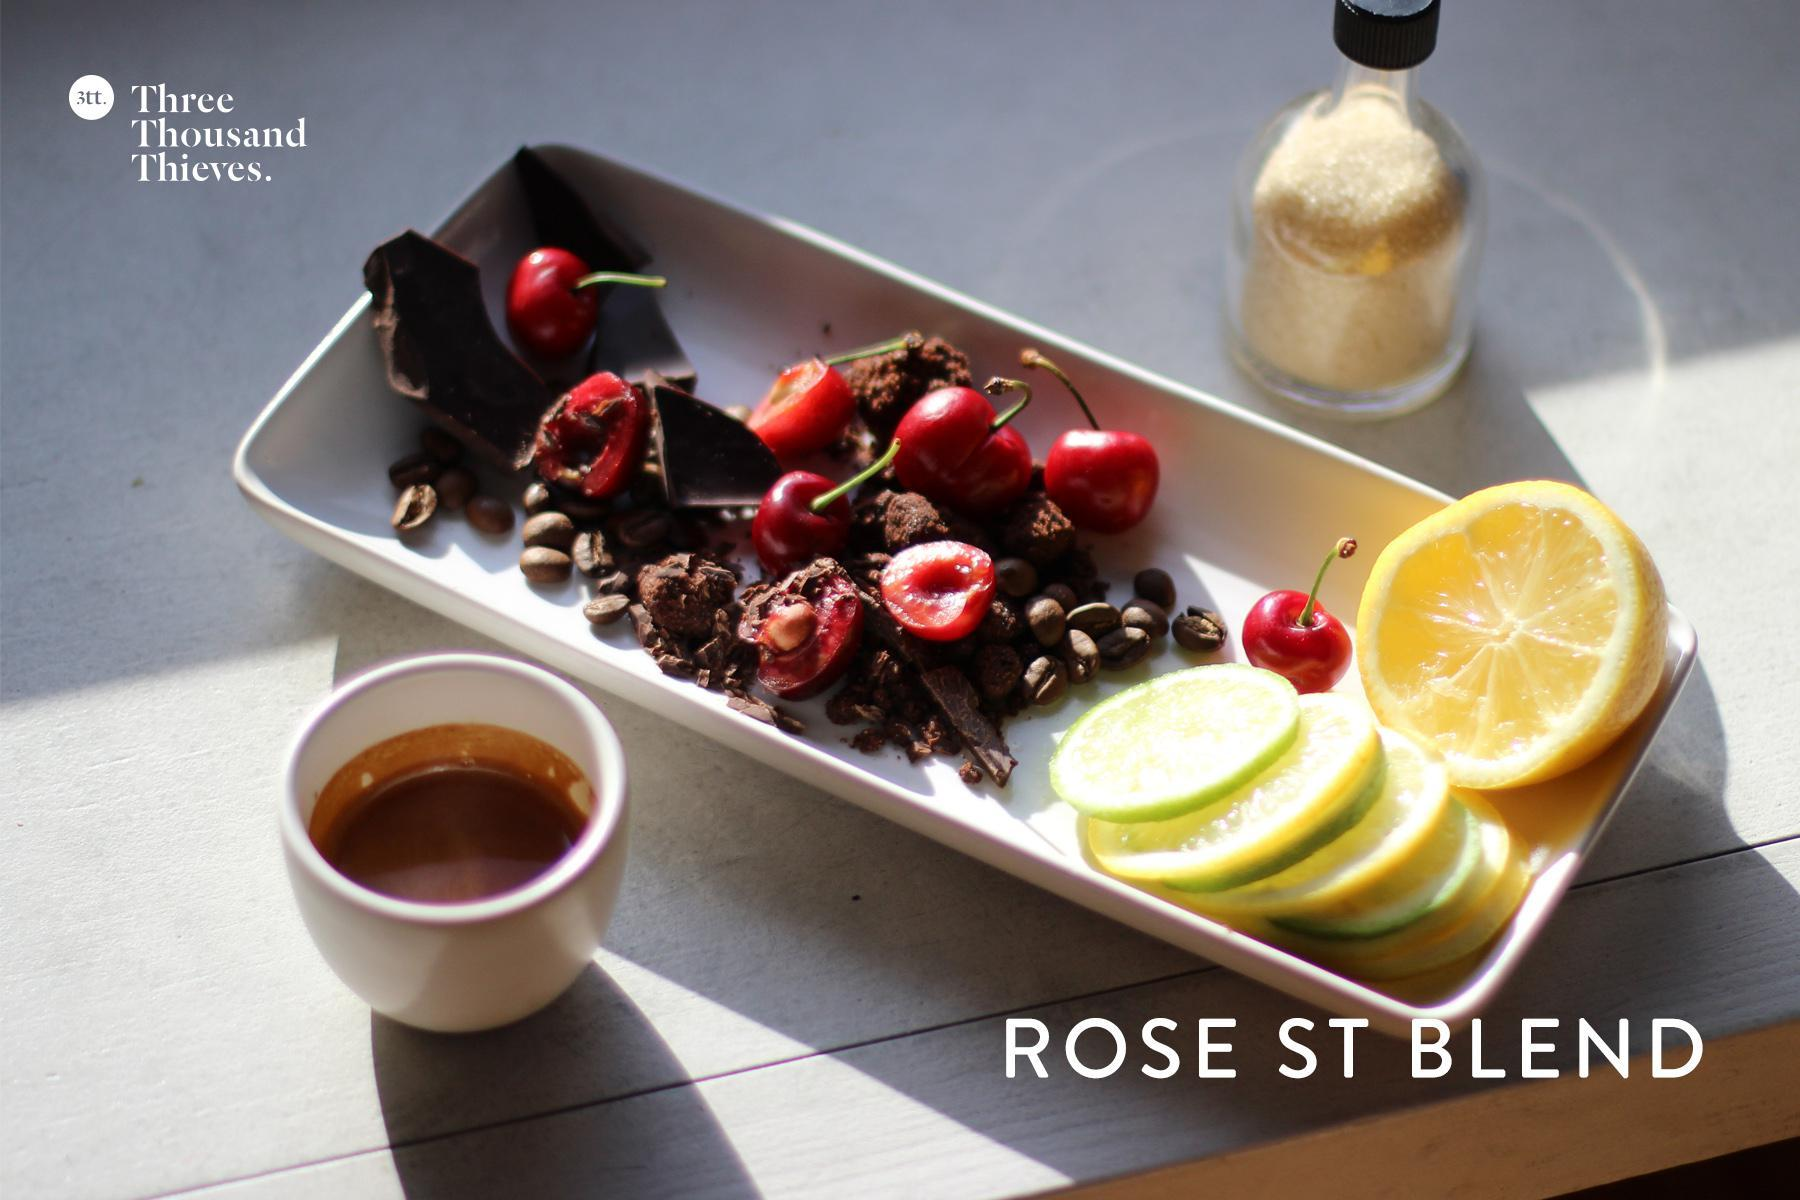 Rose St Blend by Industry Beans for November 2014 - Citrus, cherries, and cocoa; all part of the Industry.